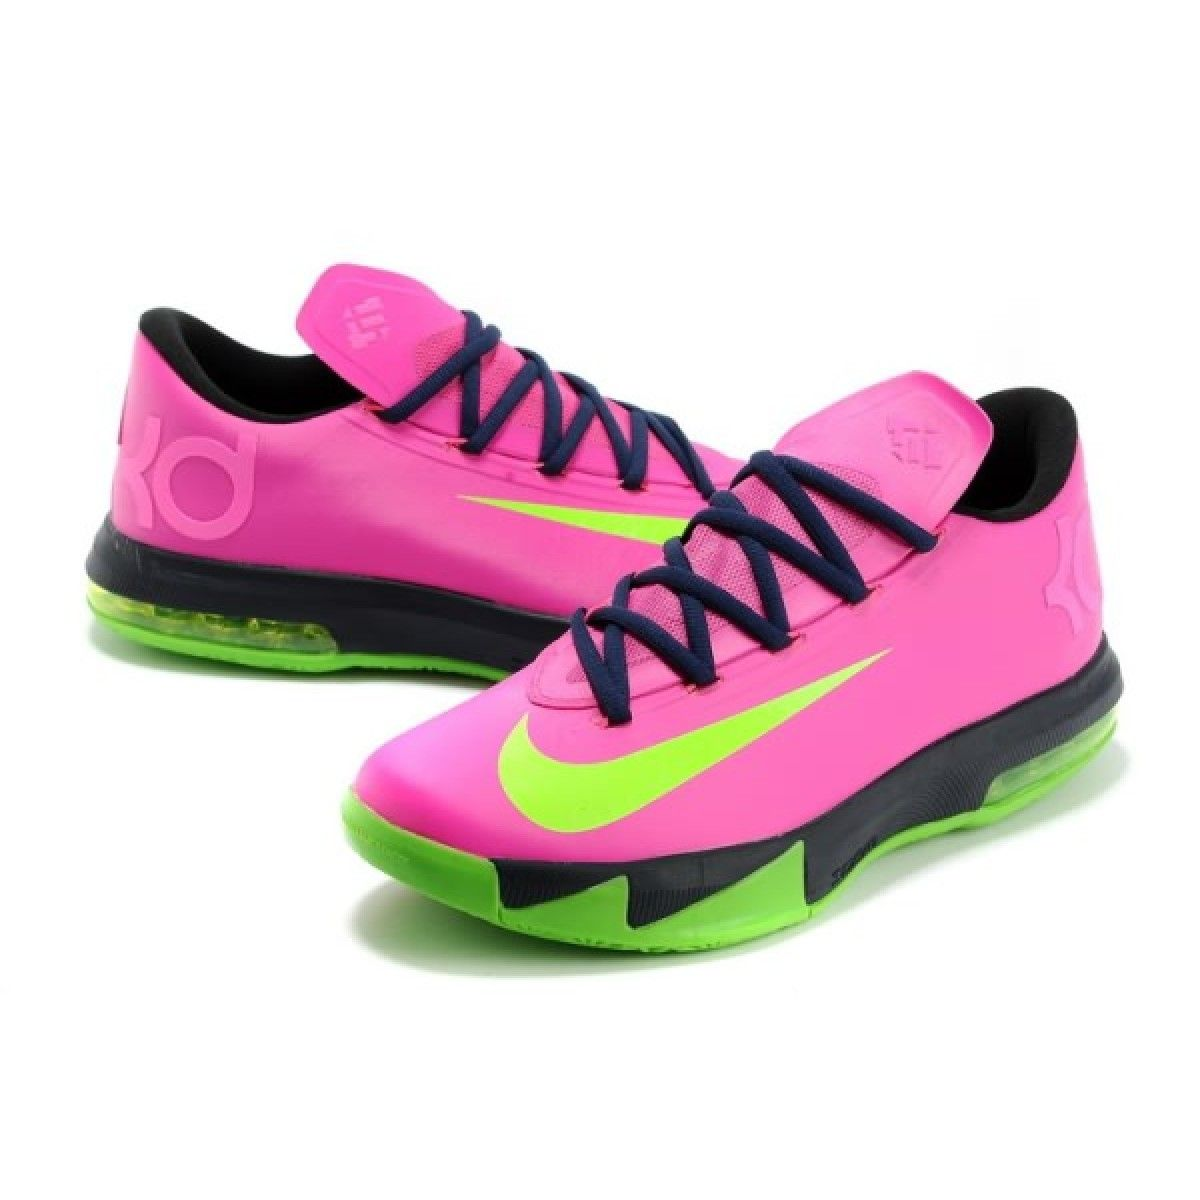 Shoes Durant 6 pink